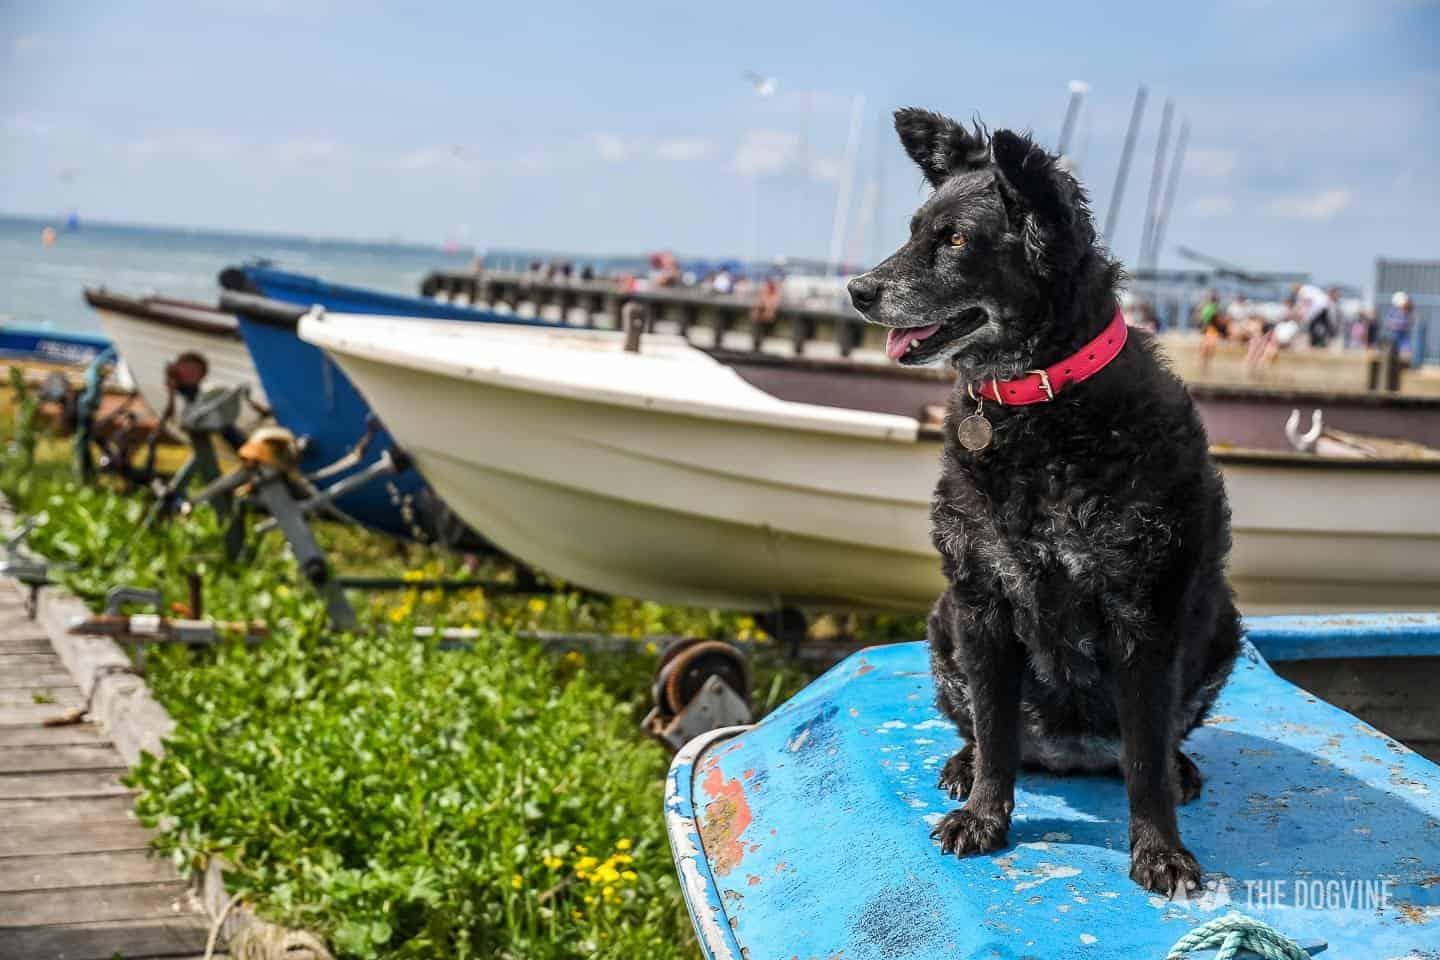 Dogs Day Out With Fetch & Follow On Tour In Dog-Friendly Whitstable 44